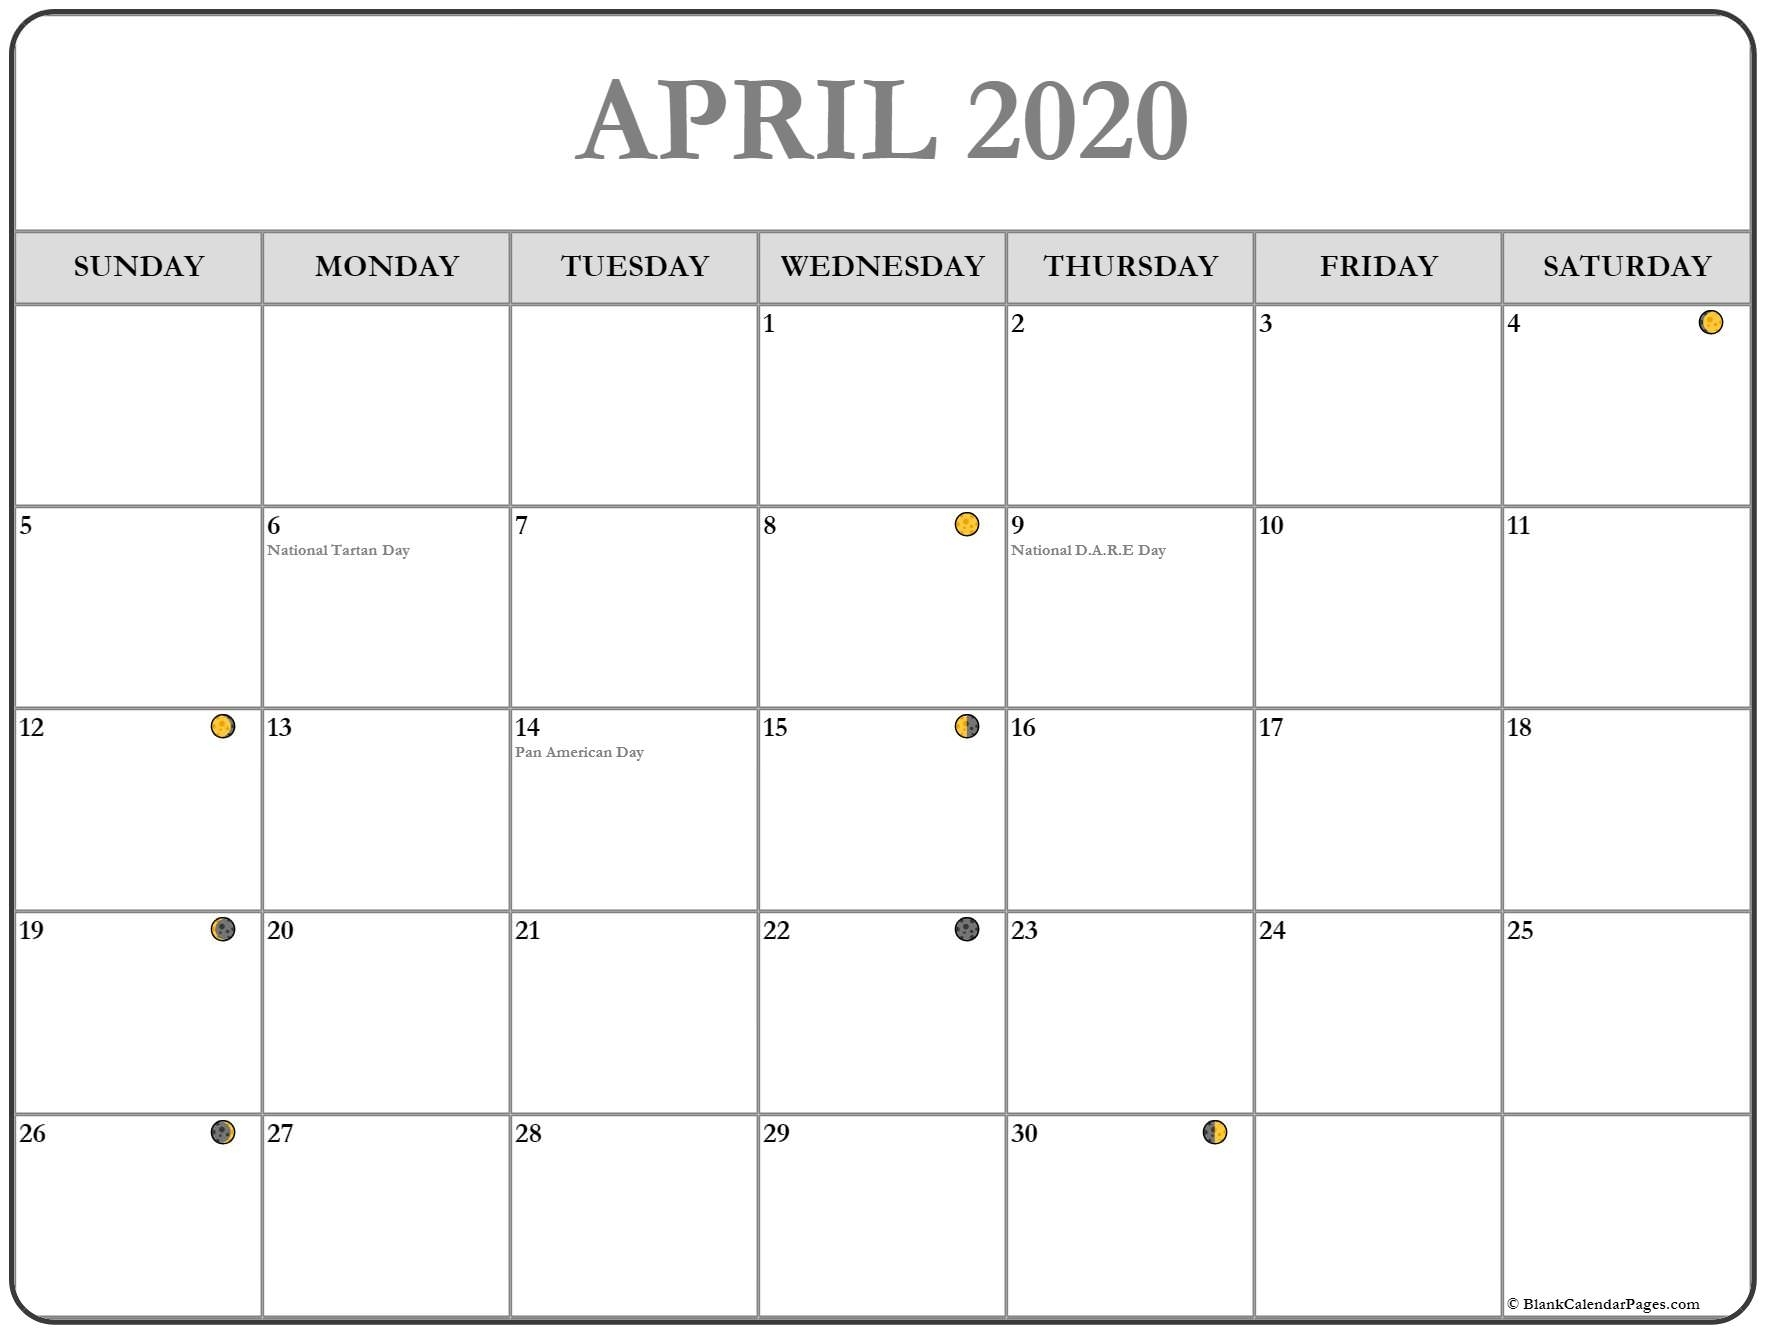 April 2020 Lunar Calendar | Moon Phase Calendar